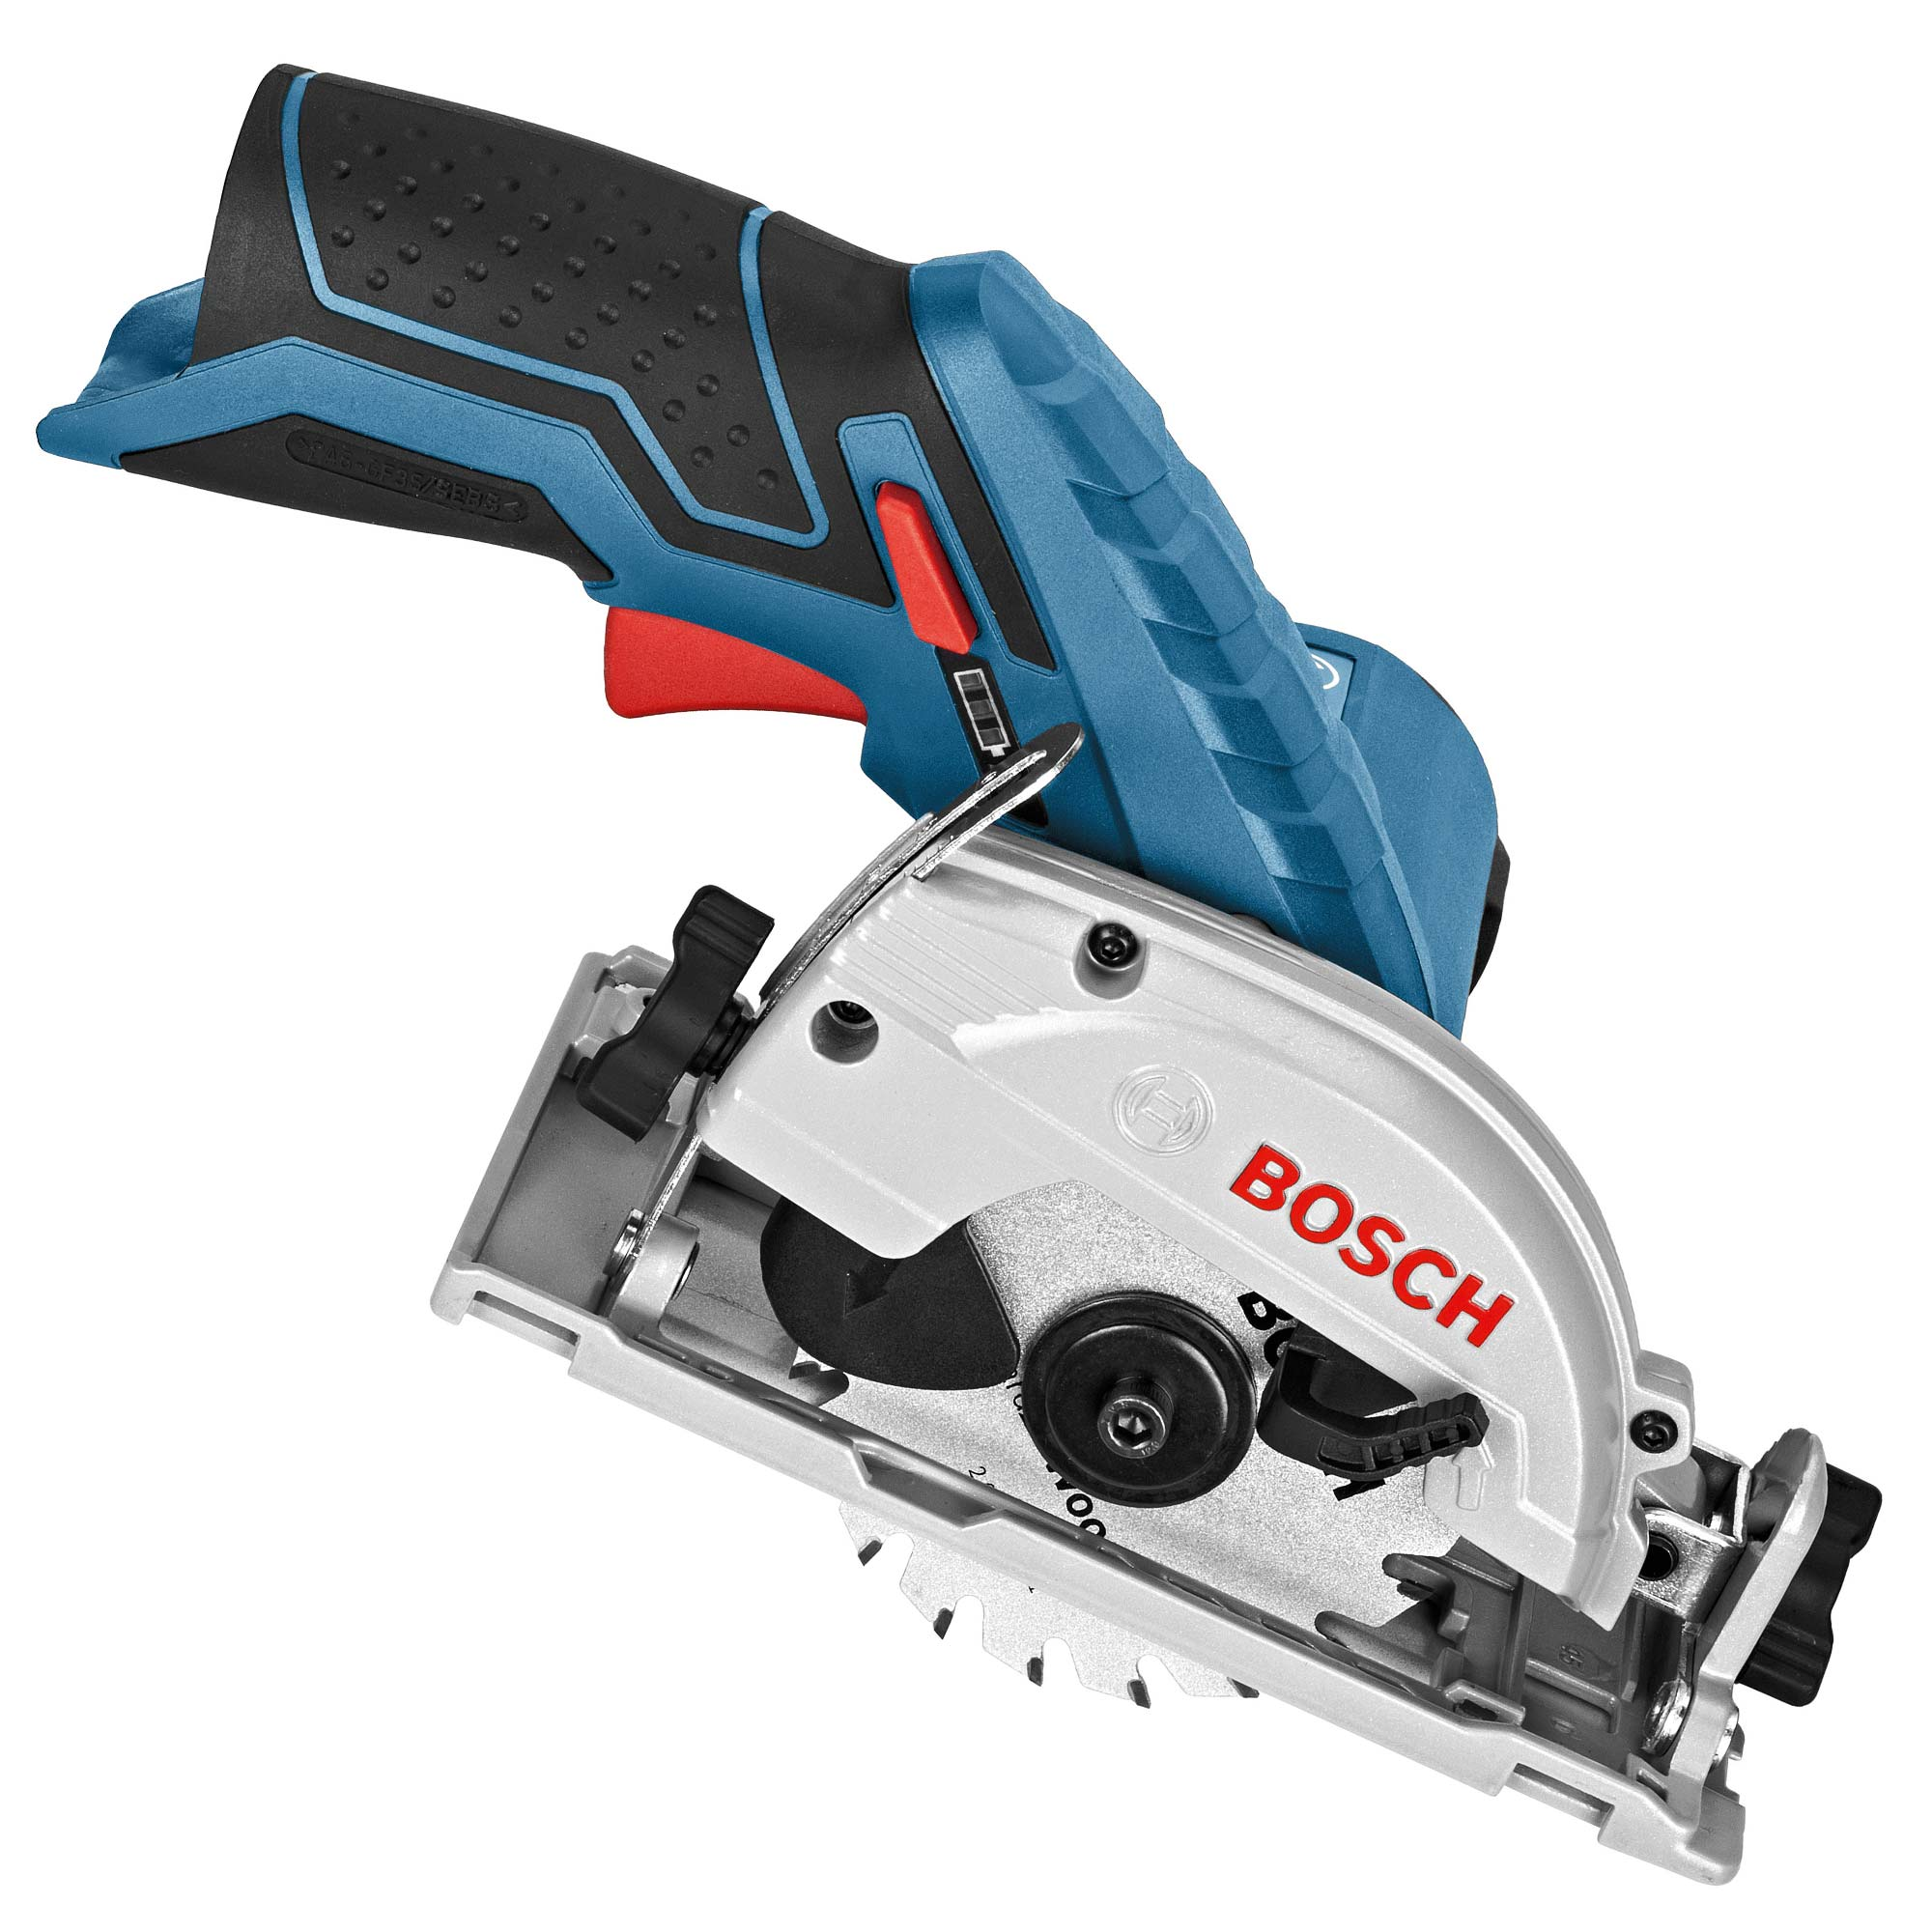 Bosch gks108vn bosch li ion circular saw body only - Bosch 10 8 v ...